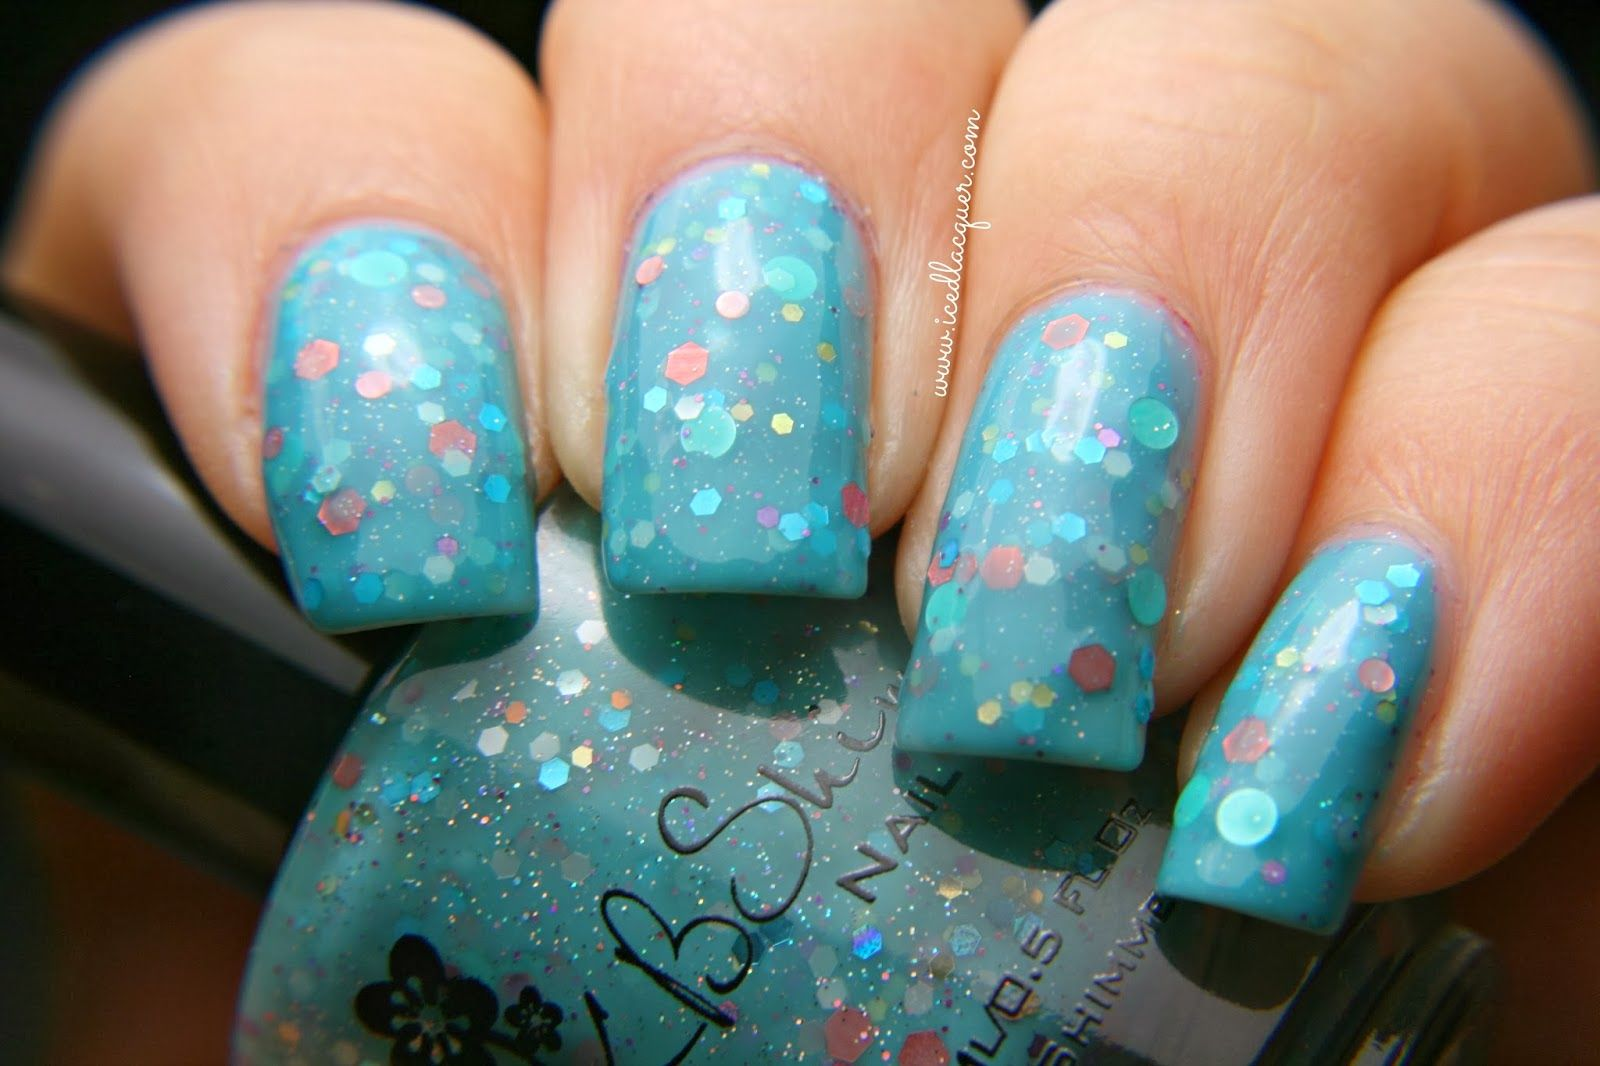 Iced Lacquer: KBShimmer Laugh Myself Lily